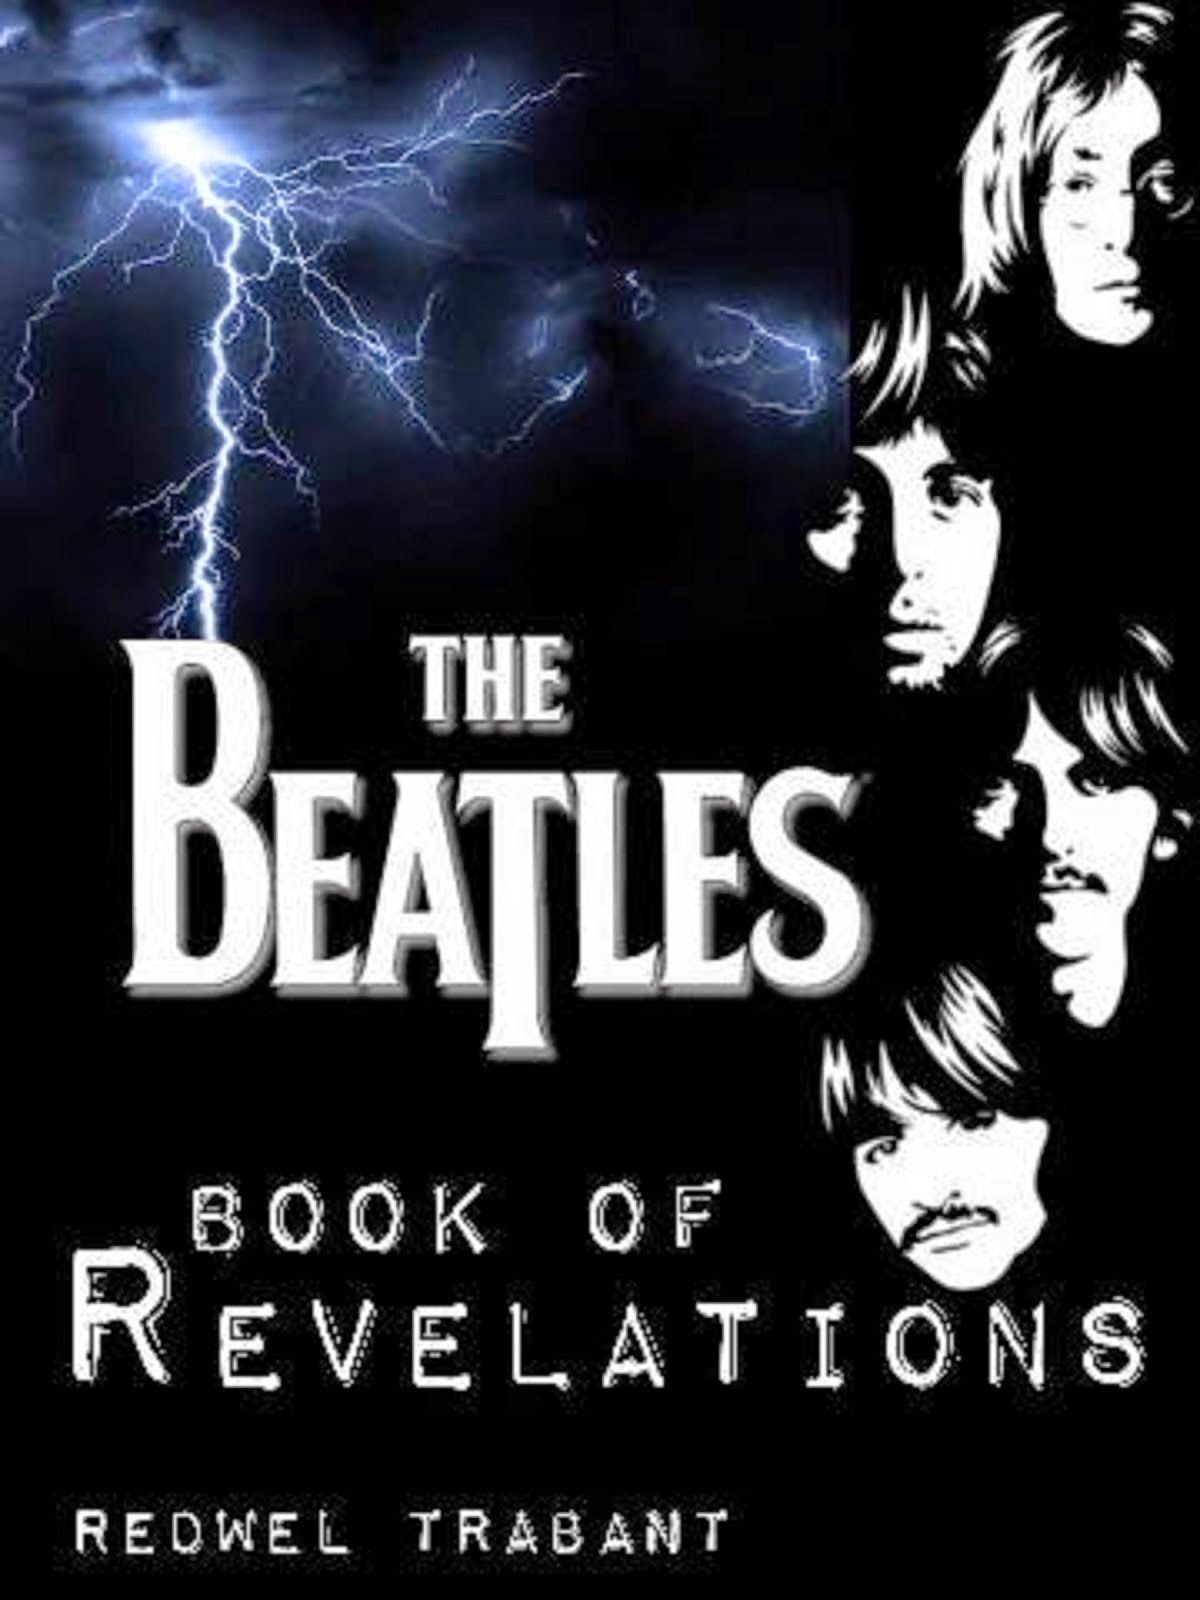 THE BEATLES BOOK OF REVELATION